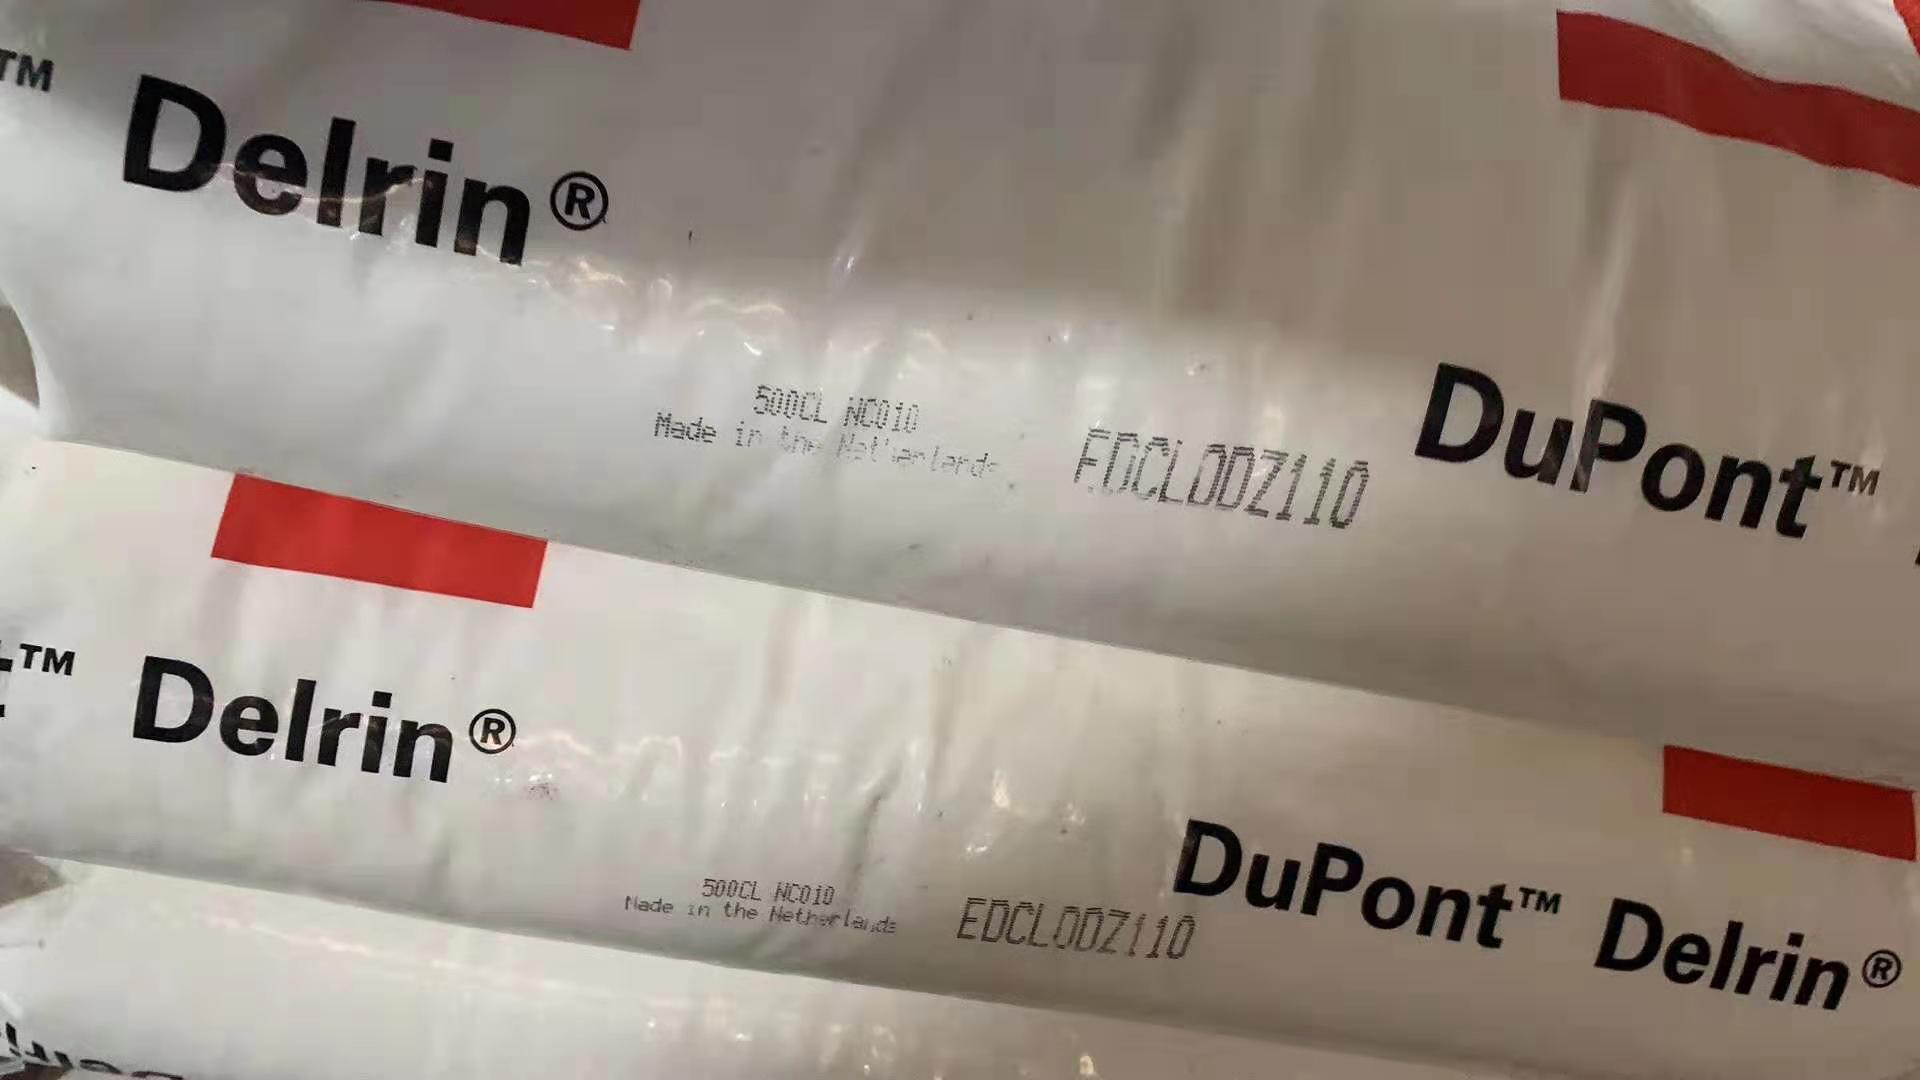 DELRIN 500CL